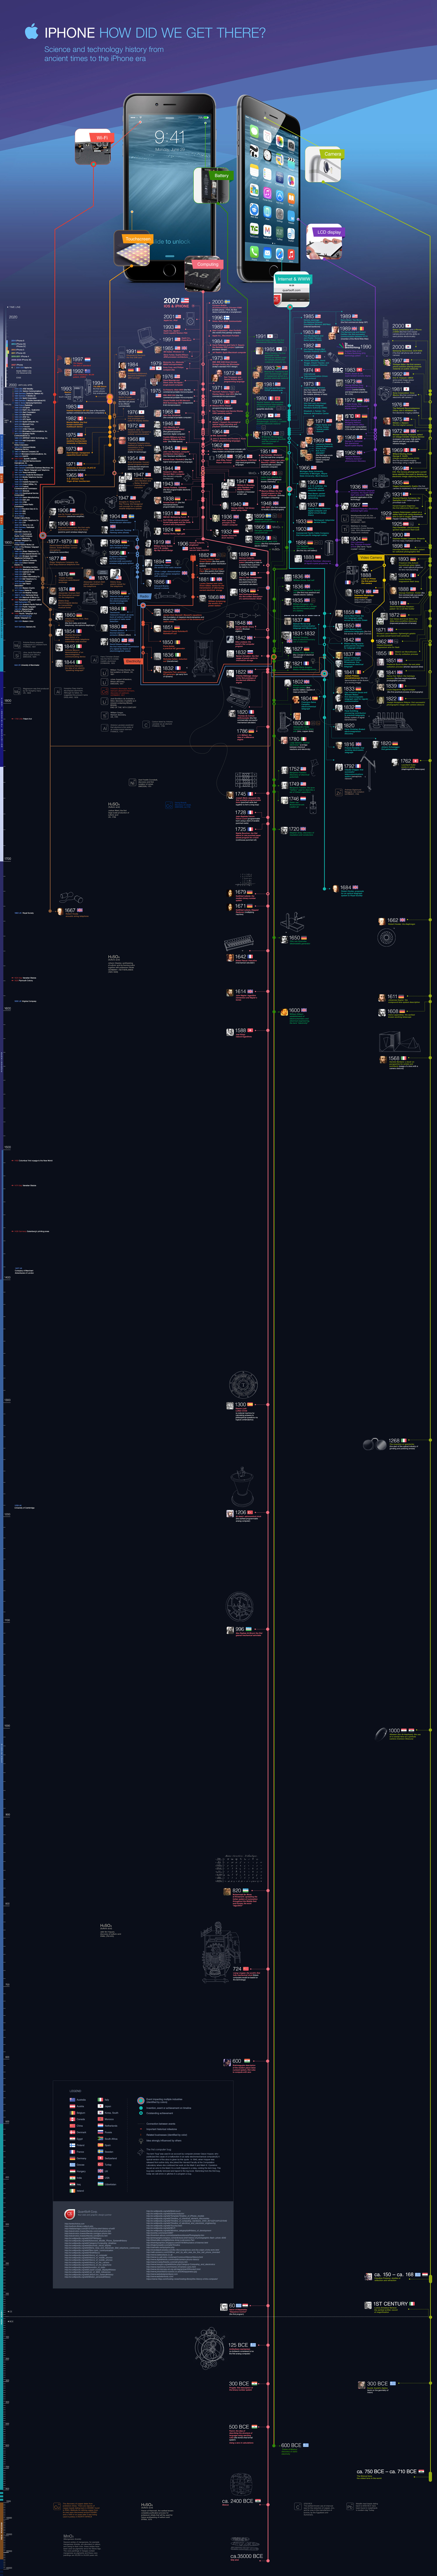 iphone-tech-history-infographic_scaled